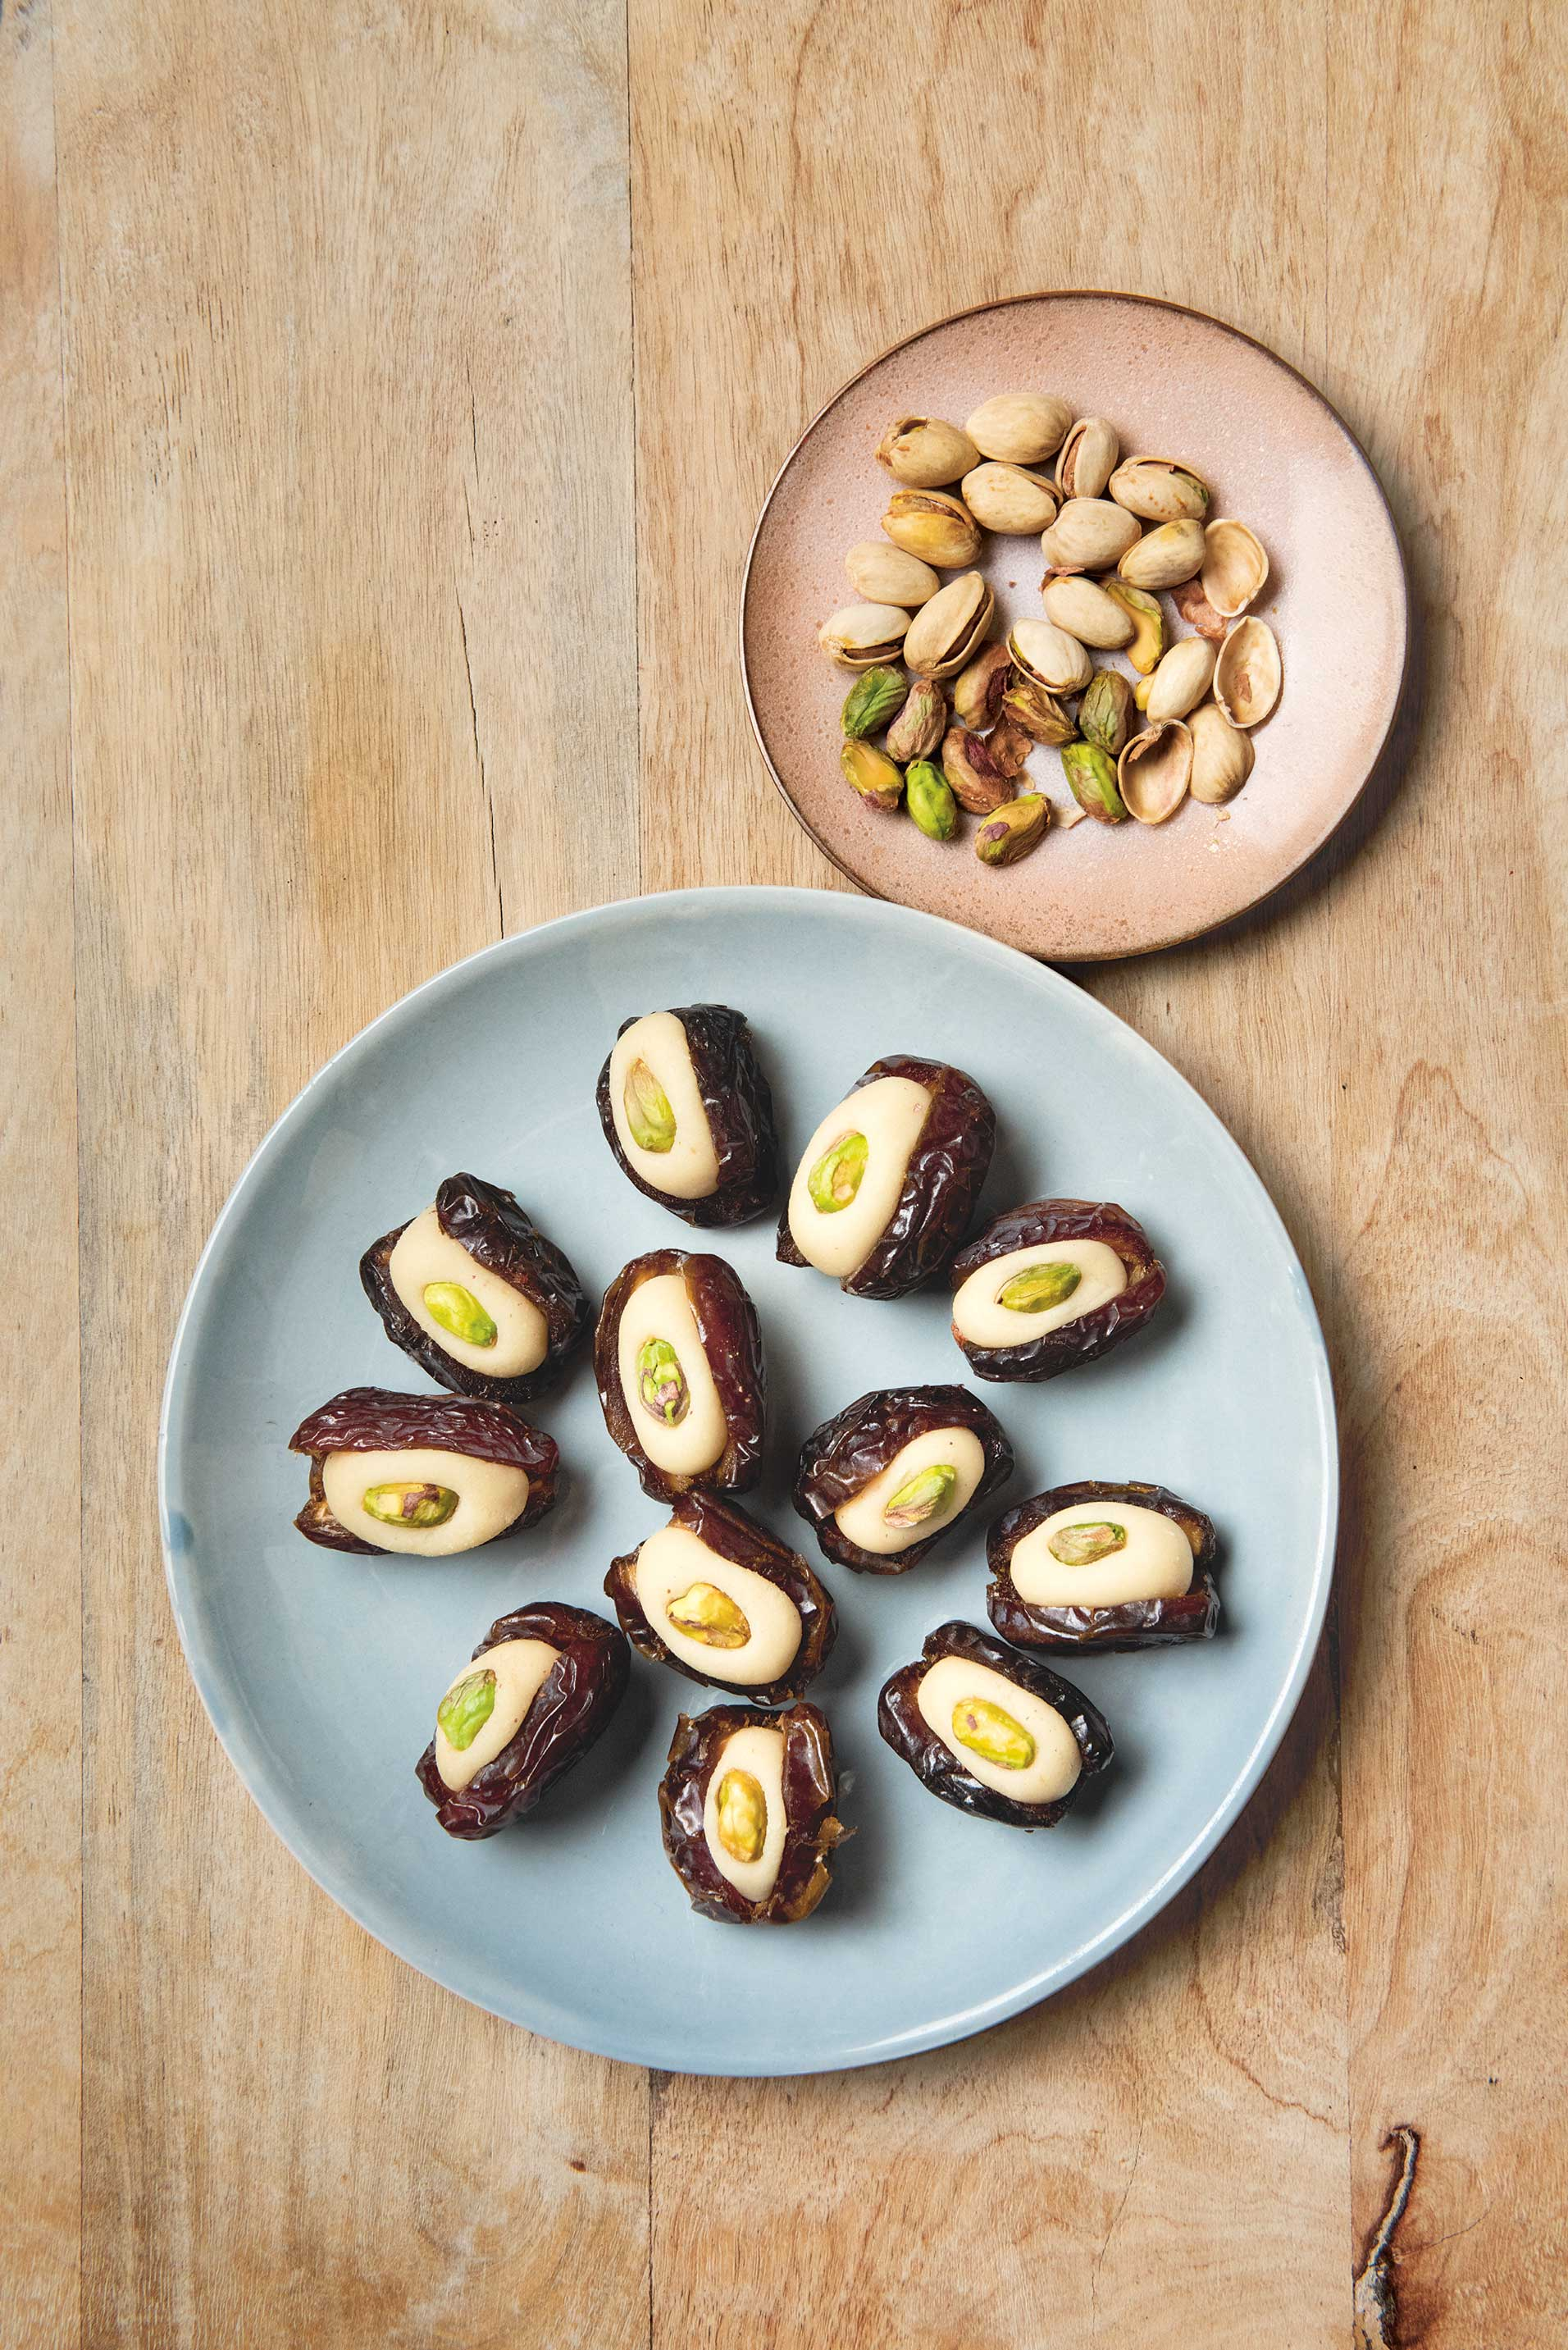 Stuffed Dates from The Jewish Cookbook